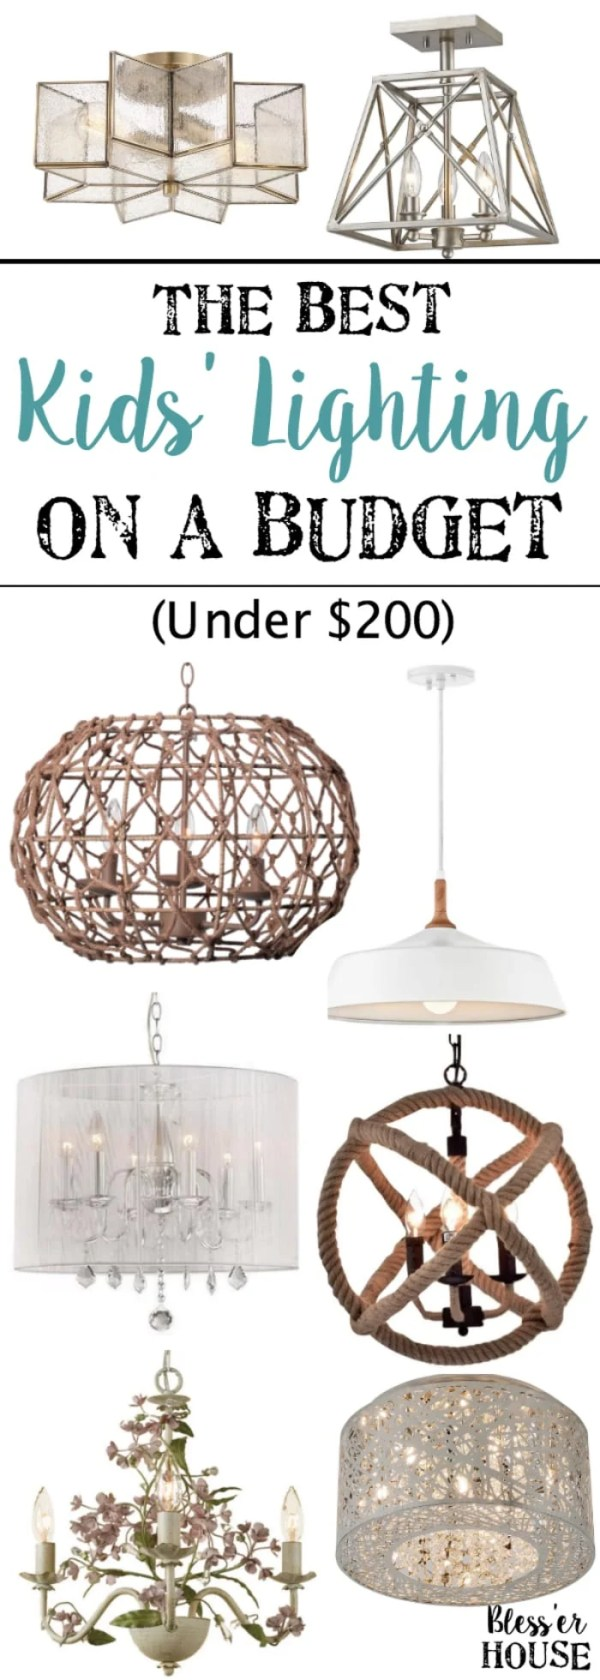 30 beautiful chandeliers, pendant lights, and flush mount lights for kids' rooms and playrooms for boys, girls, or neutrals and all for less than $200. #kidsdecor #playroom #kidsroom #girlsroom #boysroom #lighting